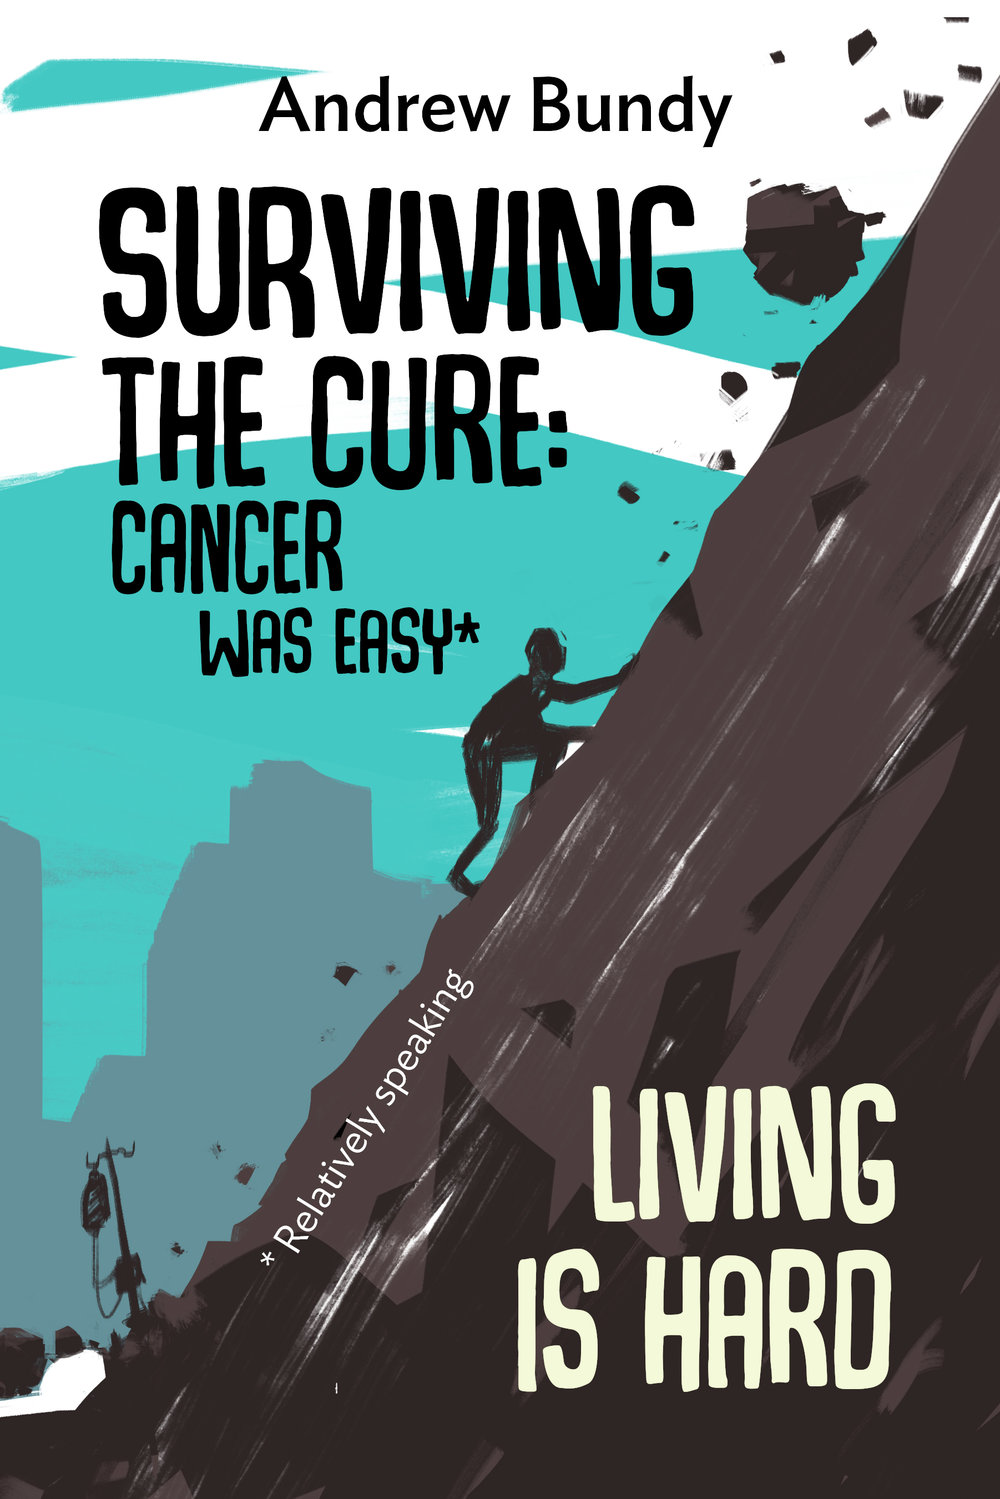 Surviving the cure cover_front.jpg